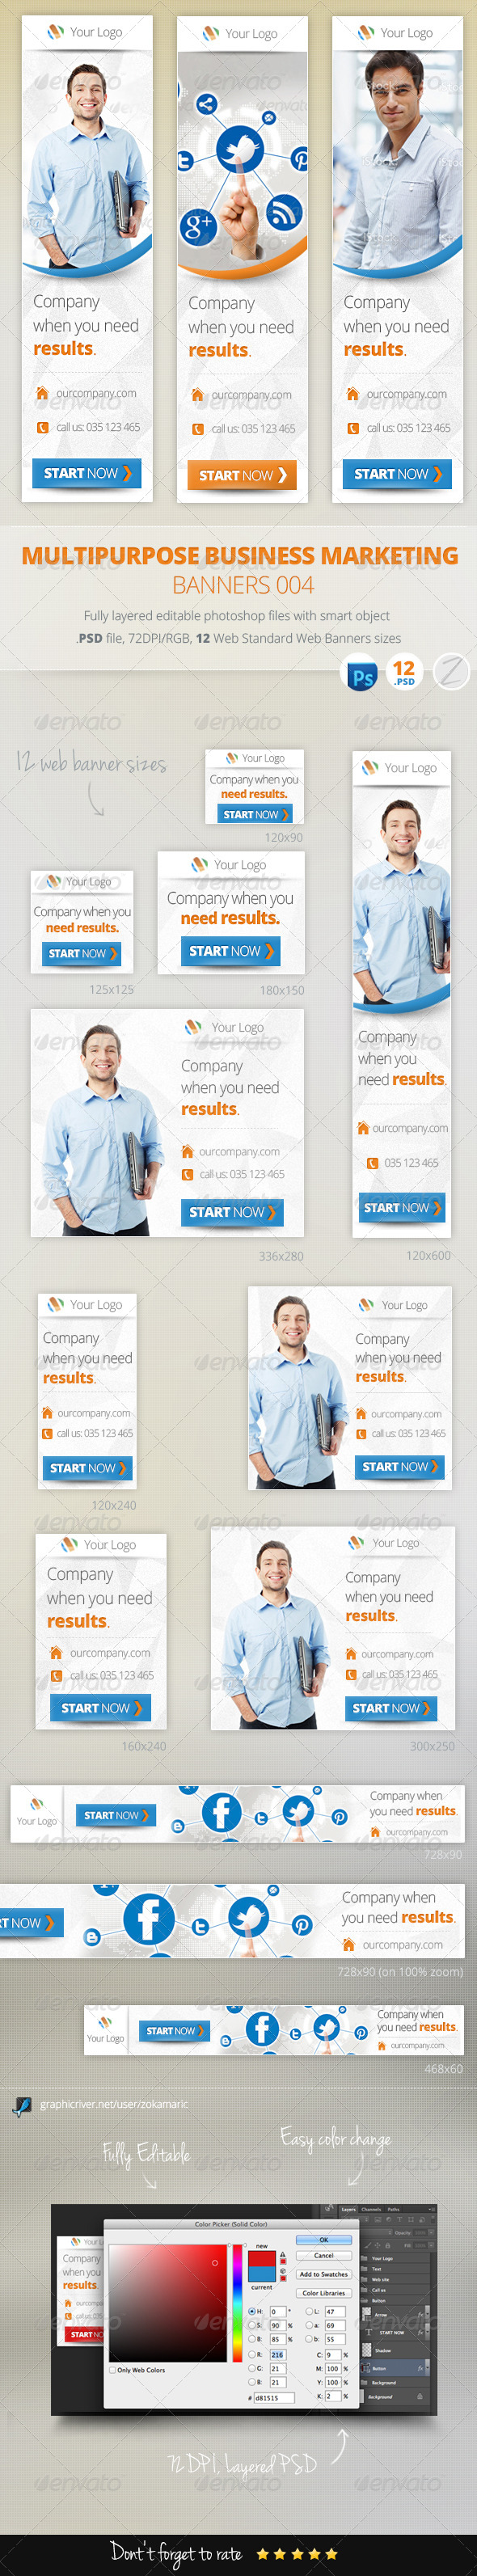 Multipurpose Business Marketing Banners 004 - Banners & Ads Web Elements